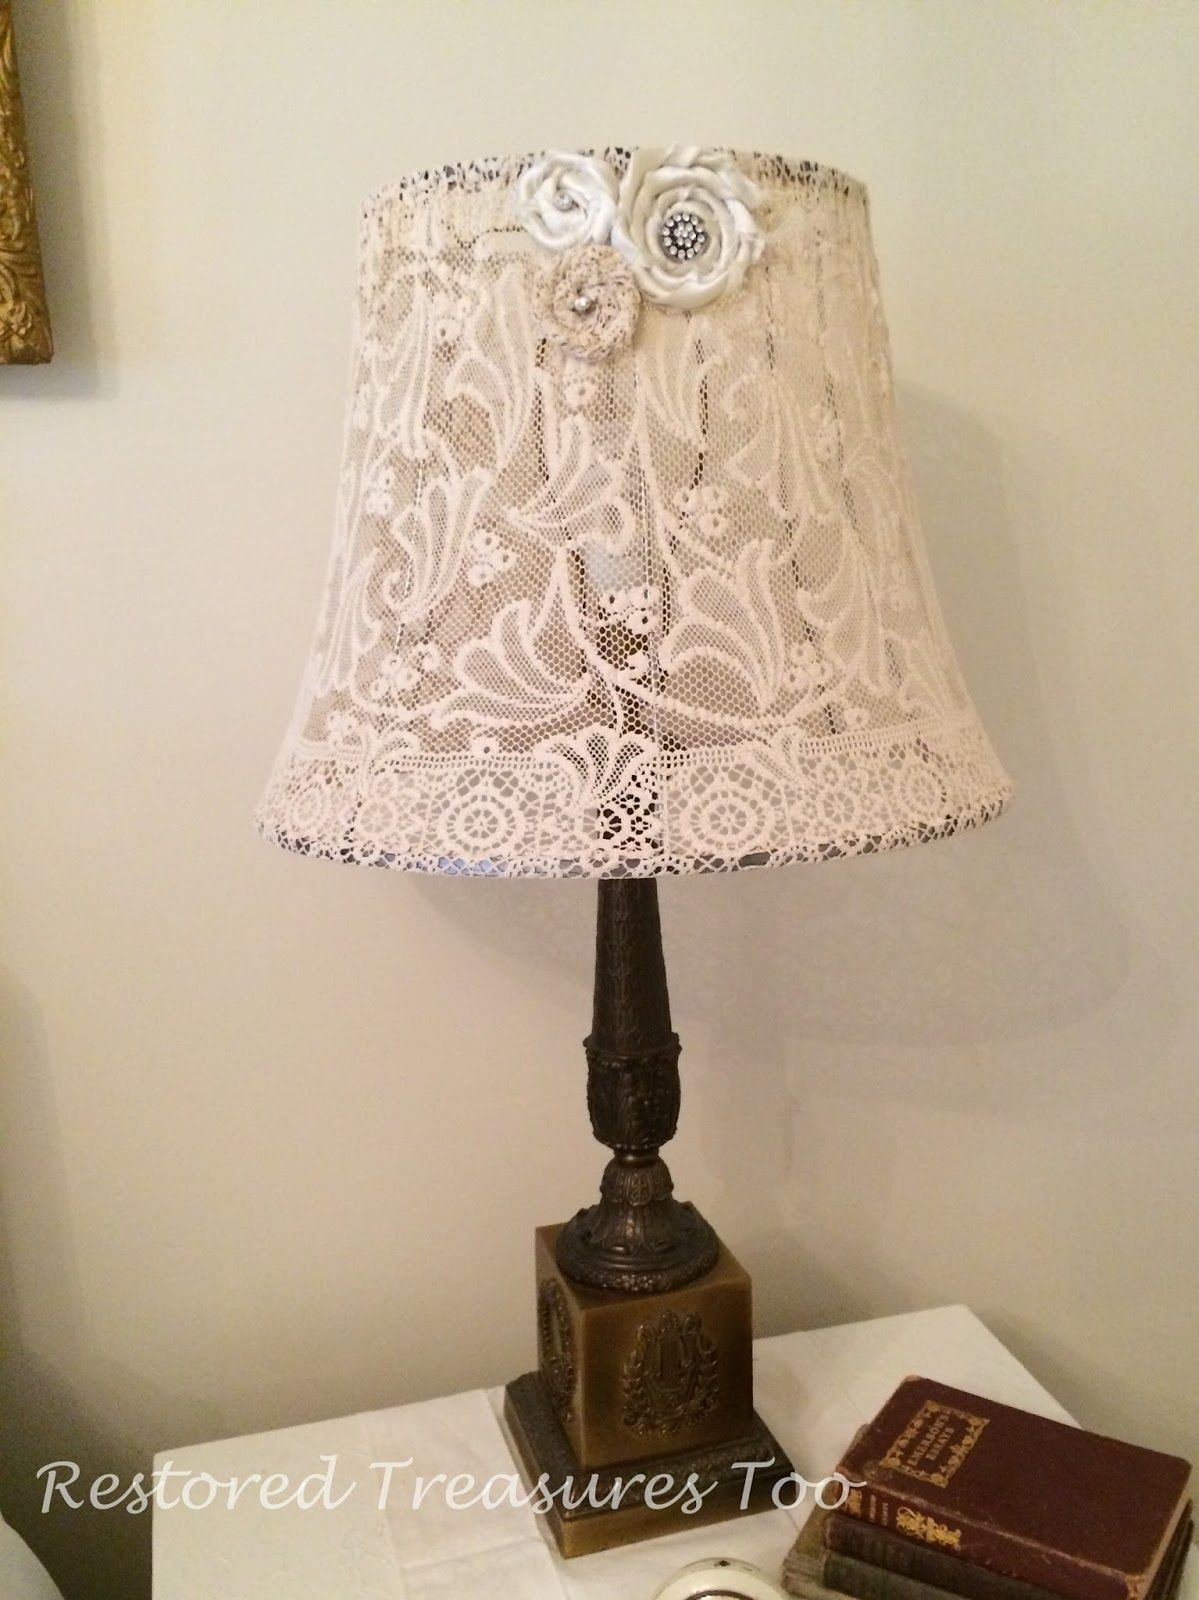 Restored Treasures Too: How to recover a lampshade with old lace ...